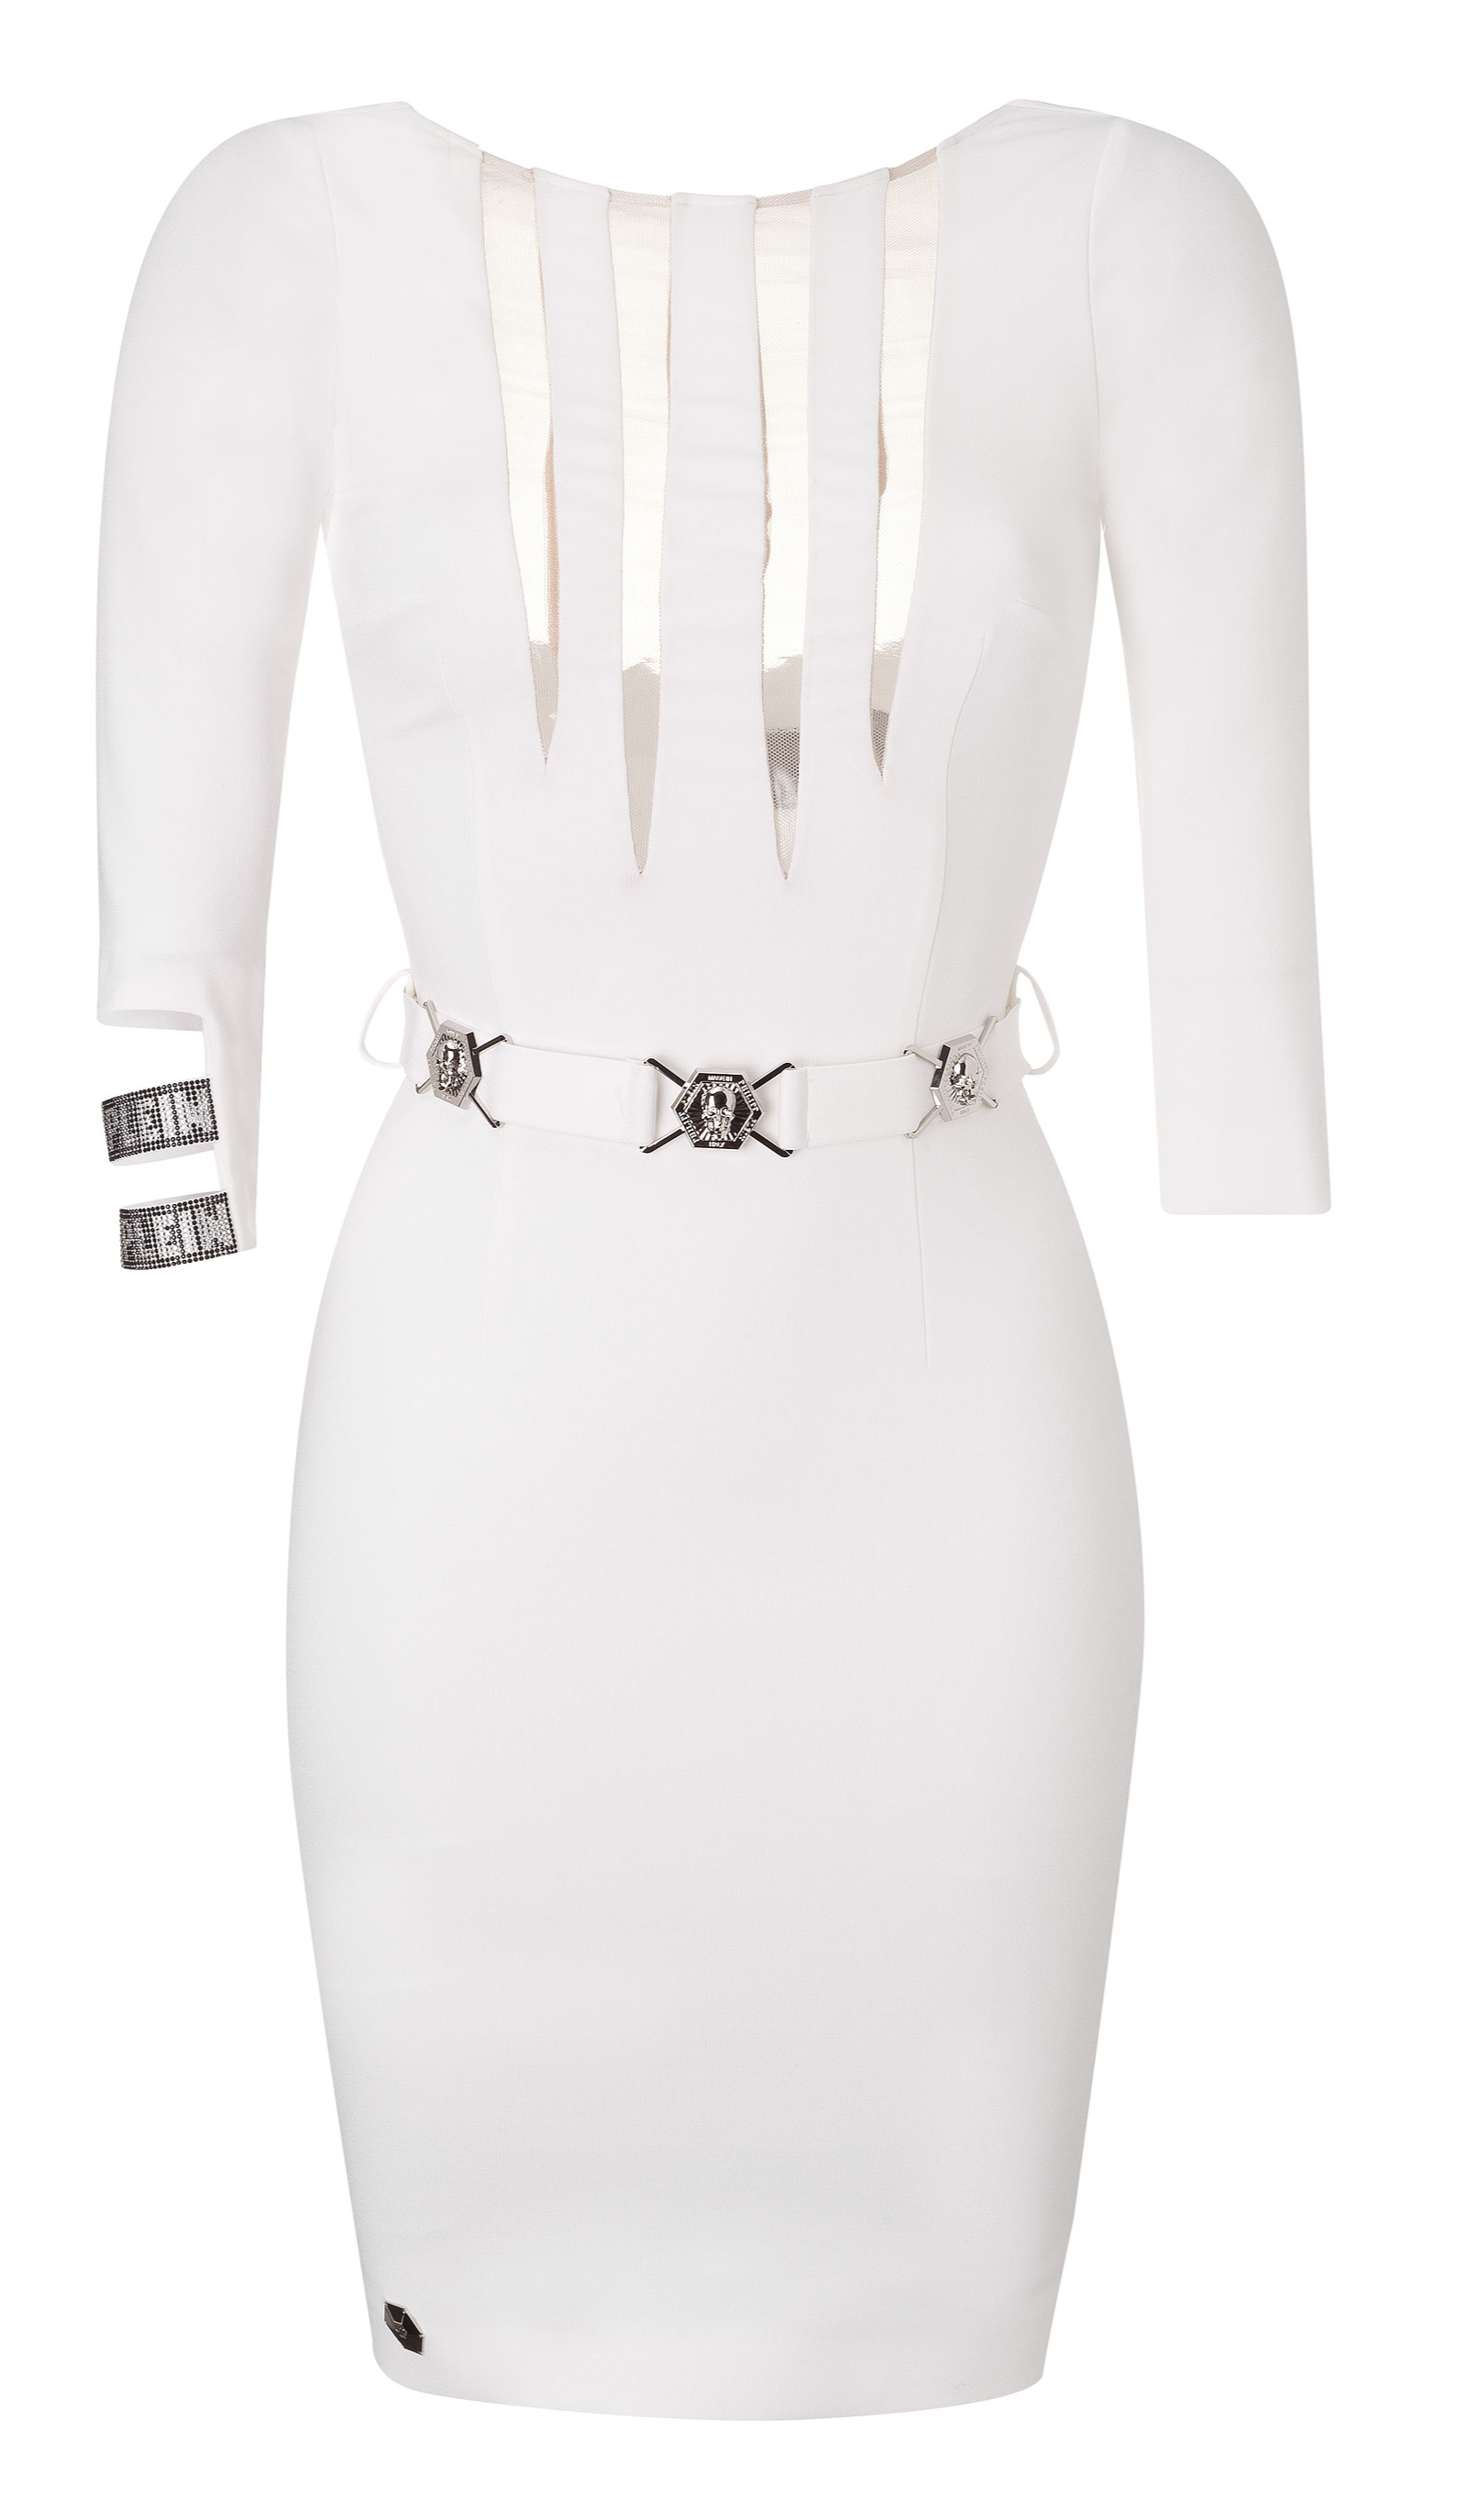 Philipp Plein Mimosa Dress